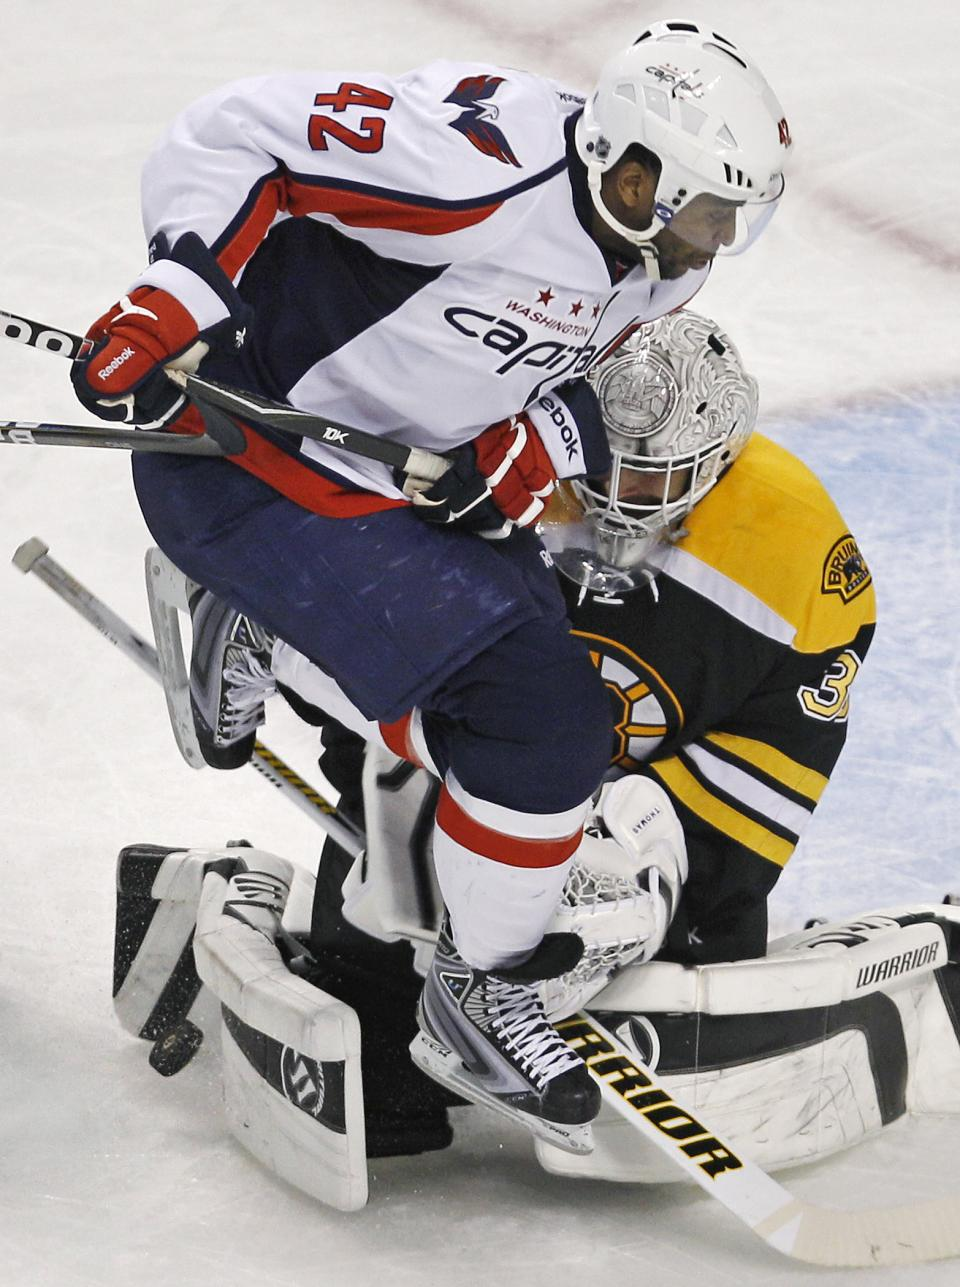 Washington Capitals right wing Joel Ward (42) leaps over the stick of Boston Bruins goalie Tim Thomas (30), who makes the save, during the second period of Game 7 of an NHL hockey Stanley Cup first-round playoff series, in Boston on Wednesday, April 25, 2012. (AP Photo/Charles Krupa)